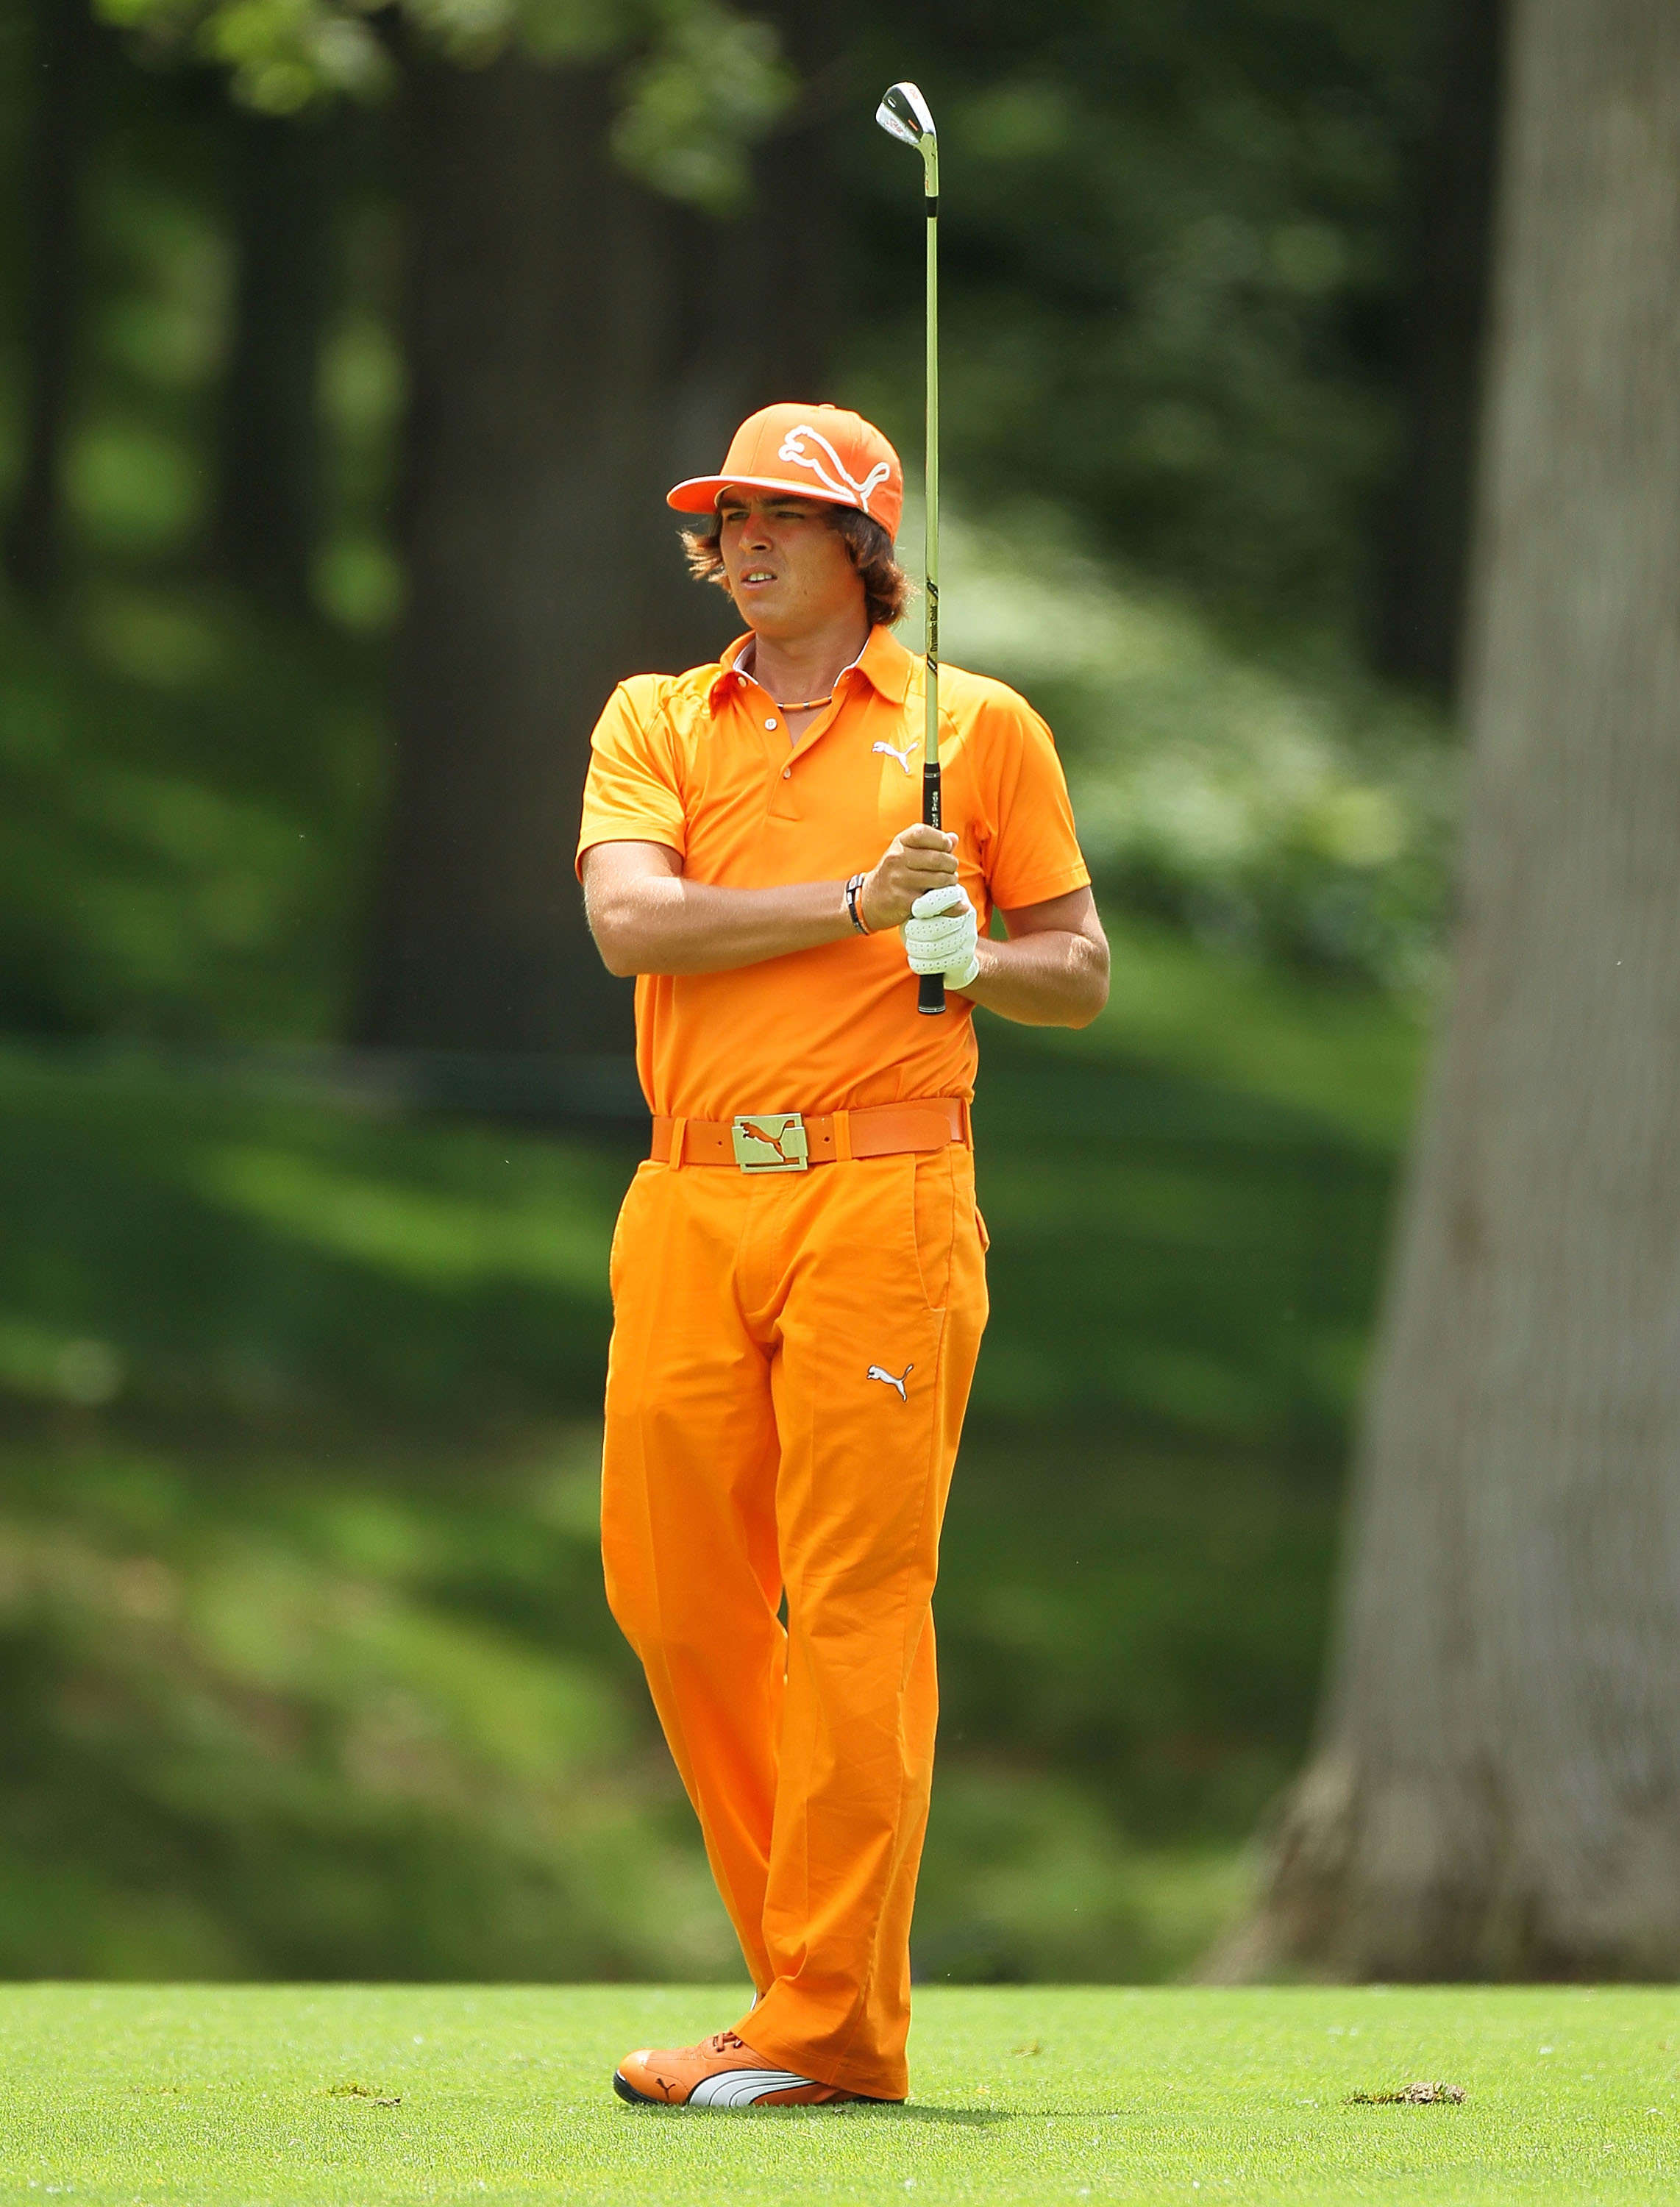 Rickie Fowler during the final round of The Memorial Tournament.